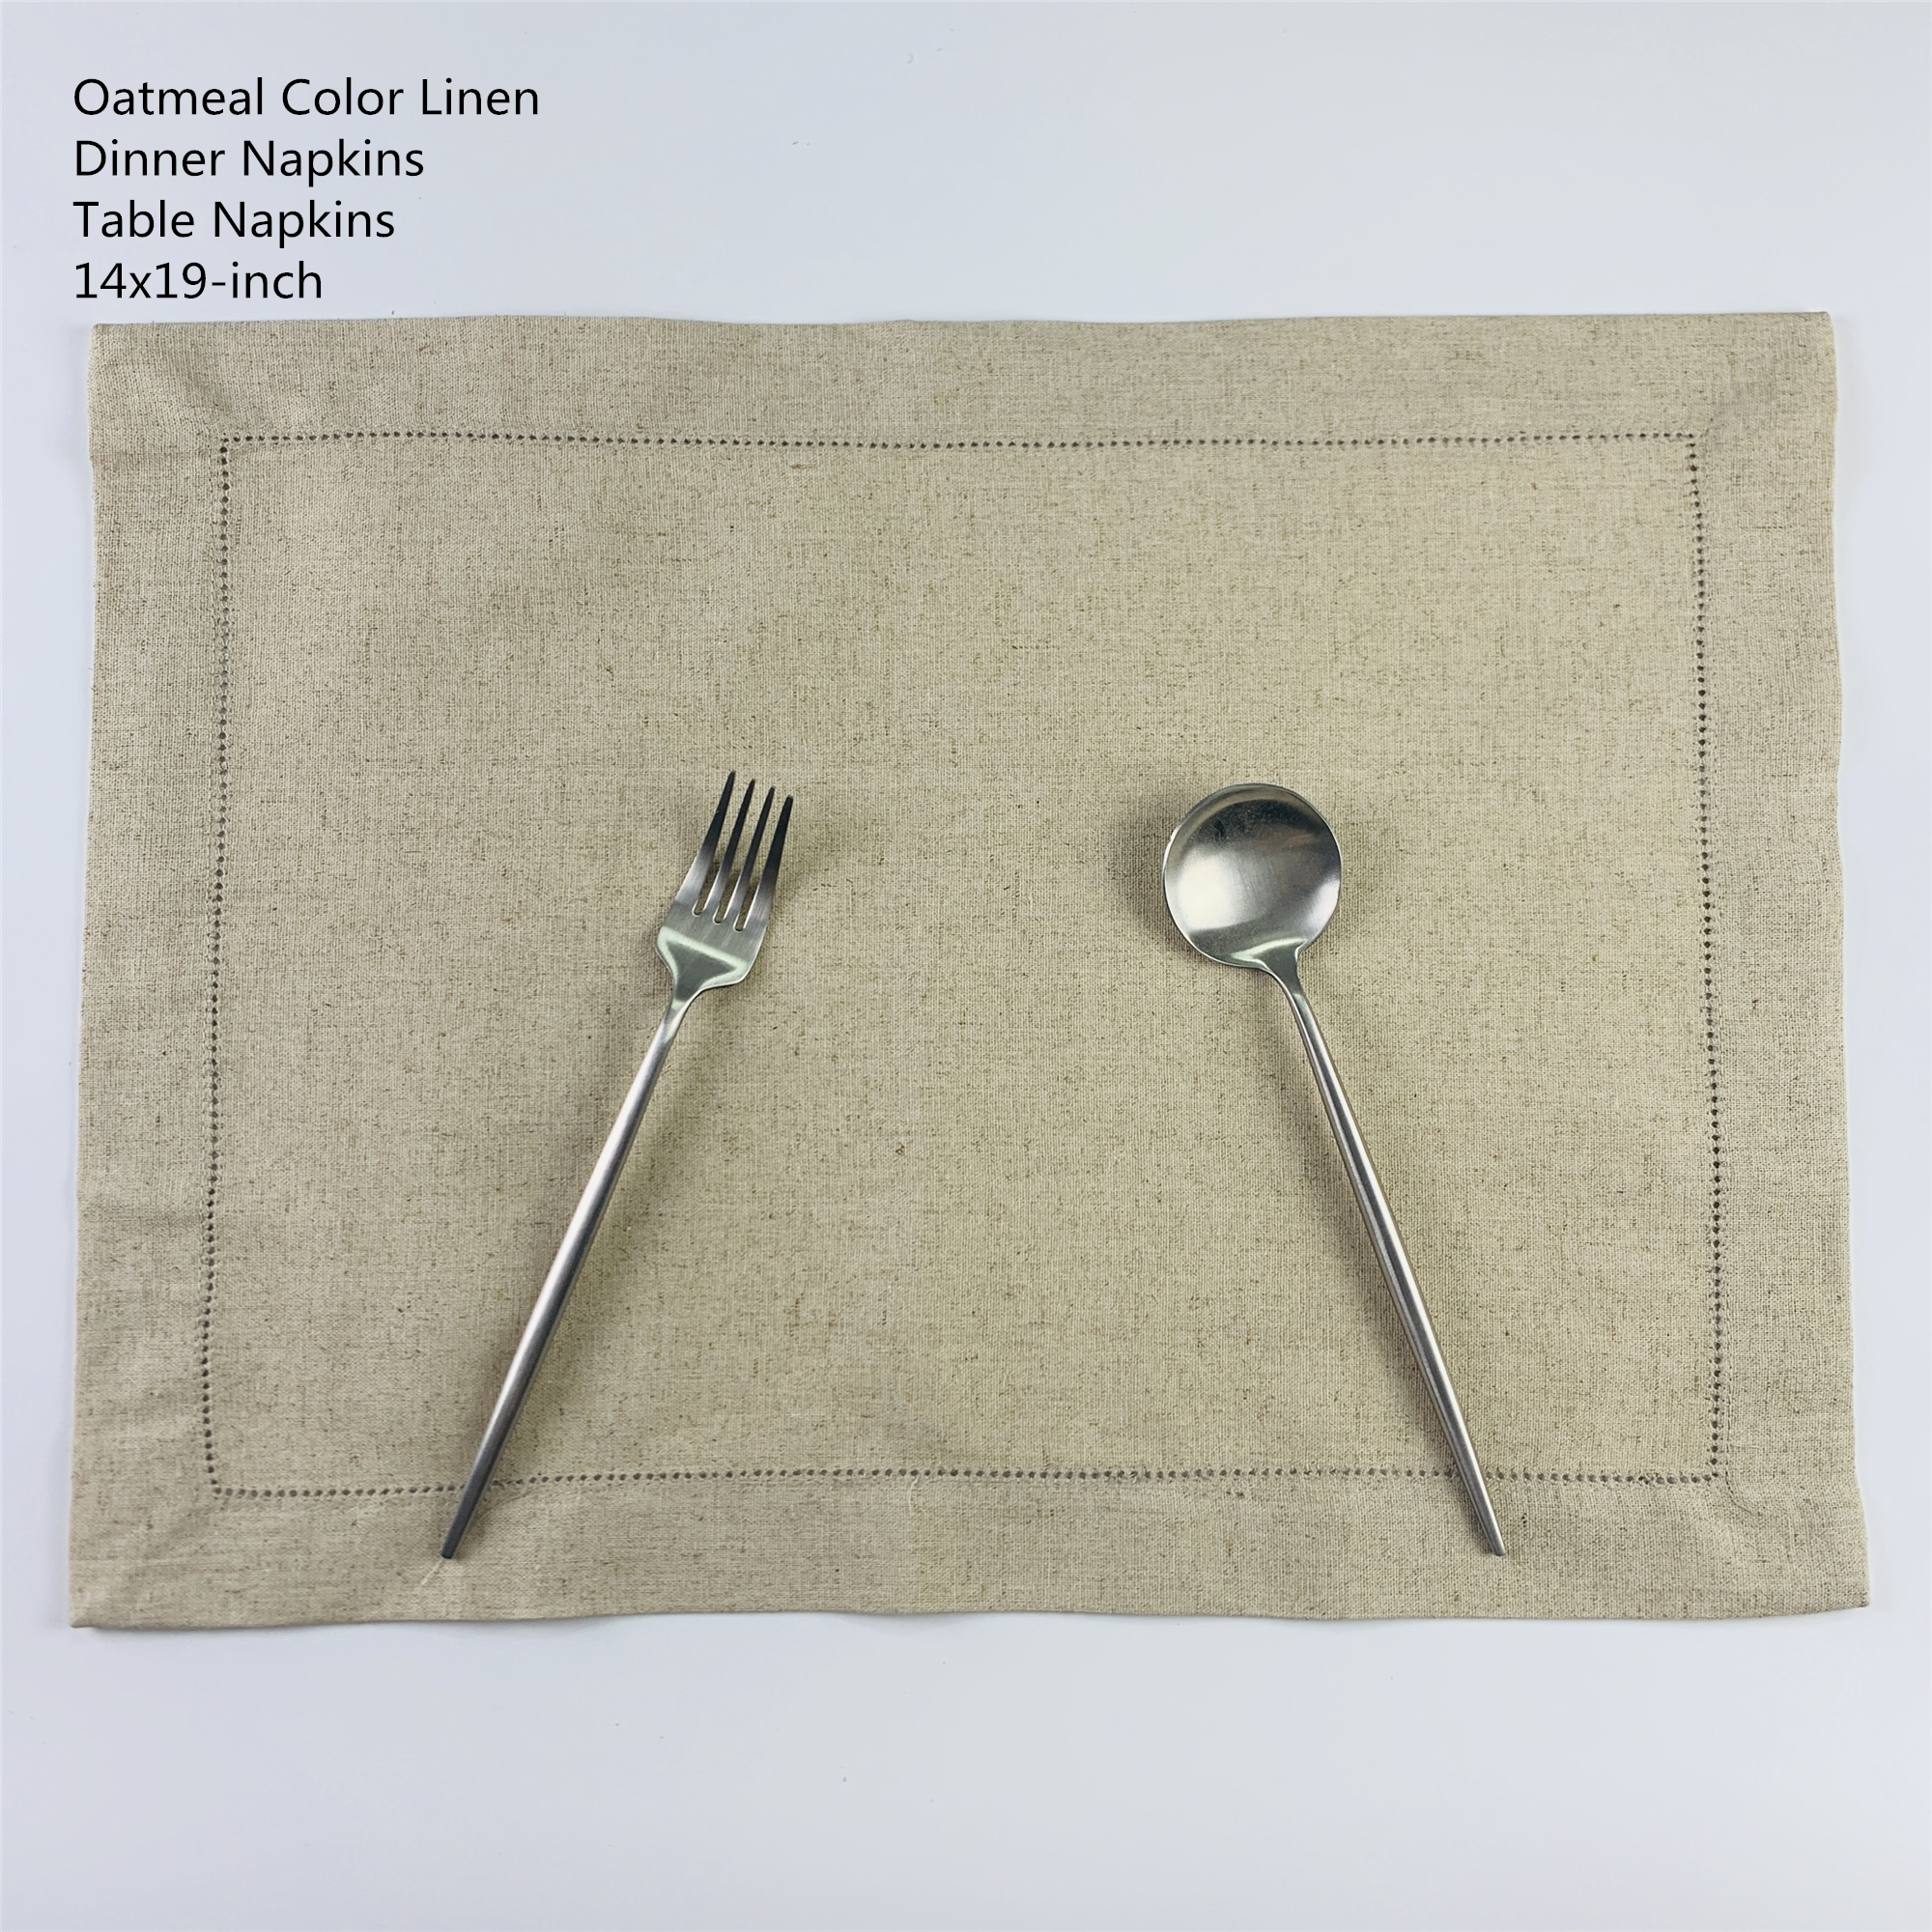 Set Of 12 Fashion Placemsts 14x19-inch Oatmeal Color Linen Table Cloth Ladder Embroidery Hemstitched For Elegant Lunch Or Dinner